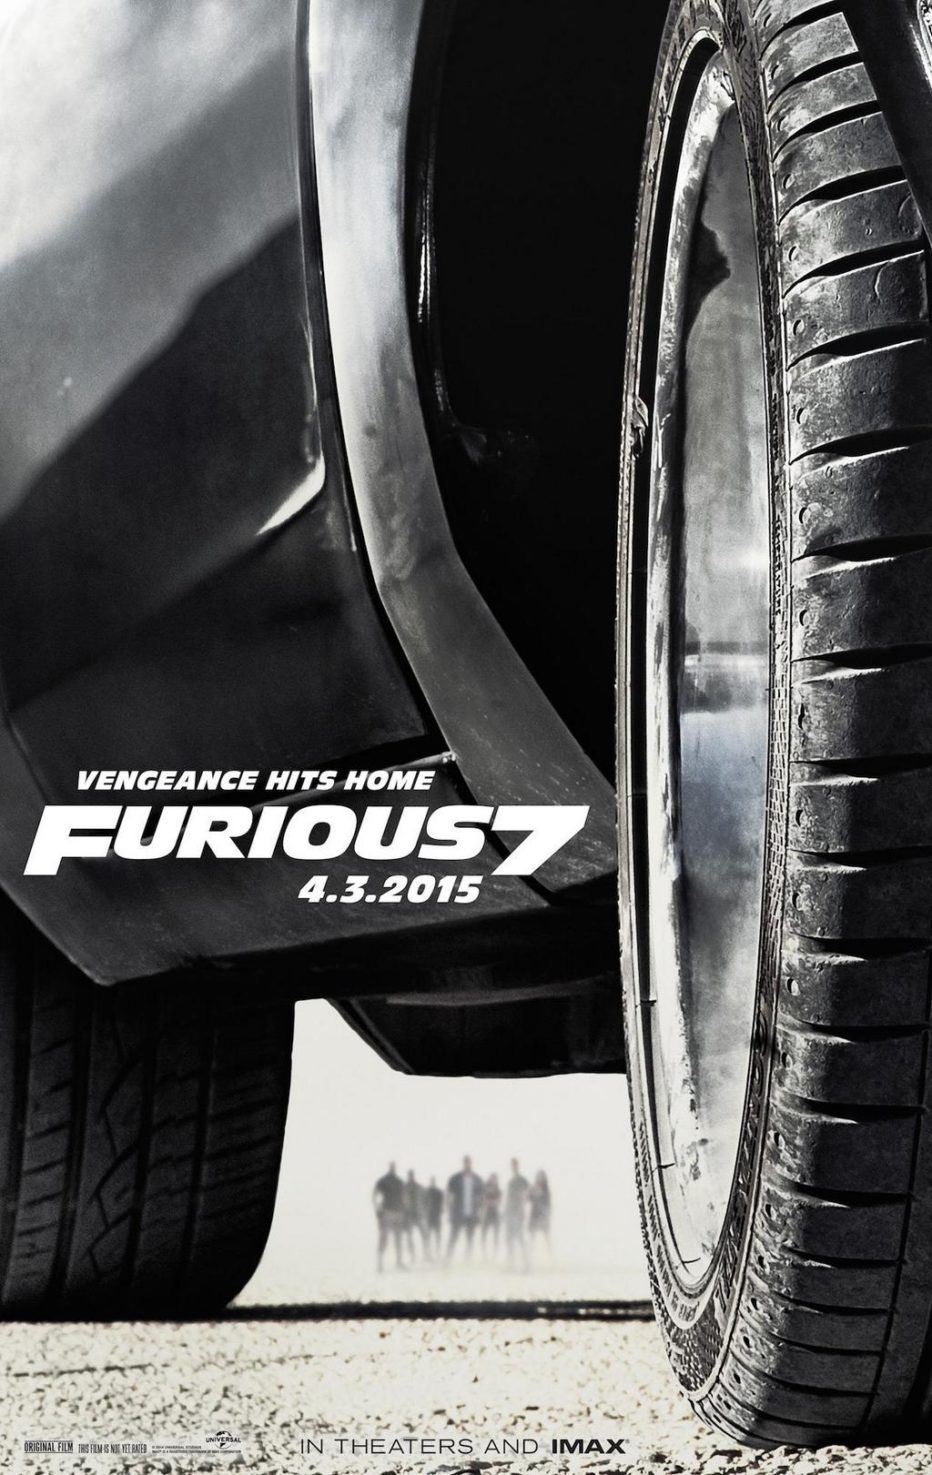 Superbowl 2015: Furious 7 spot